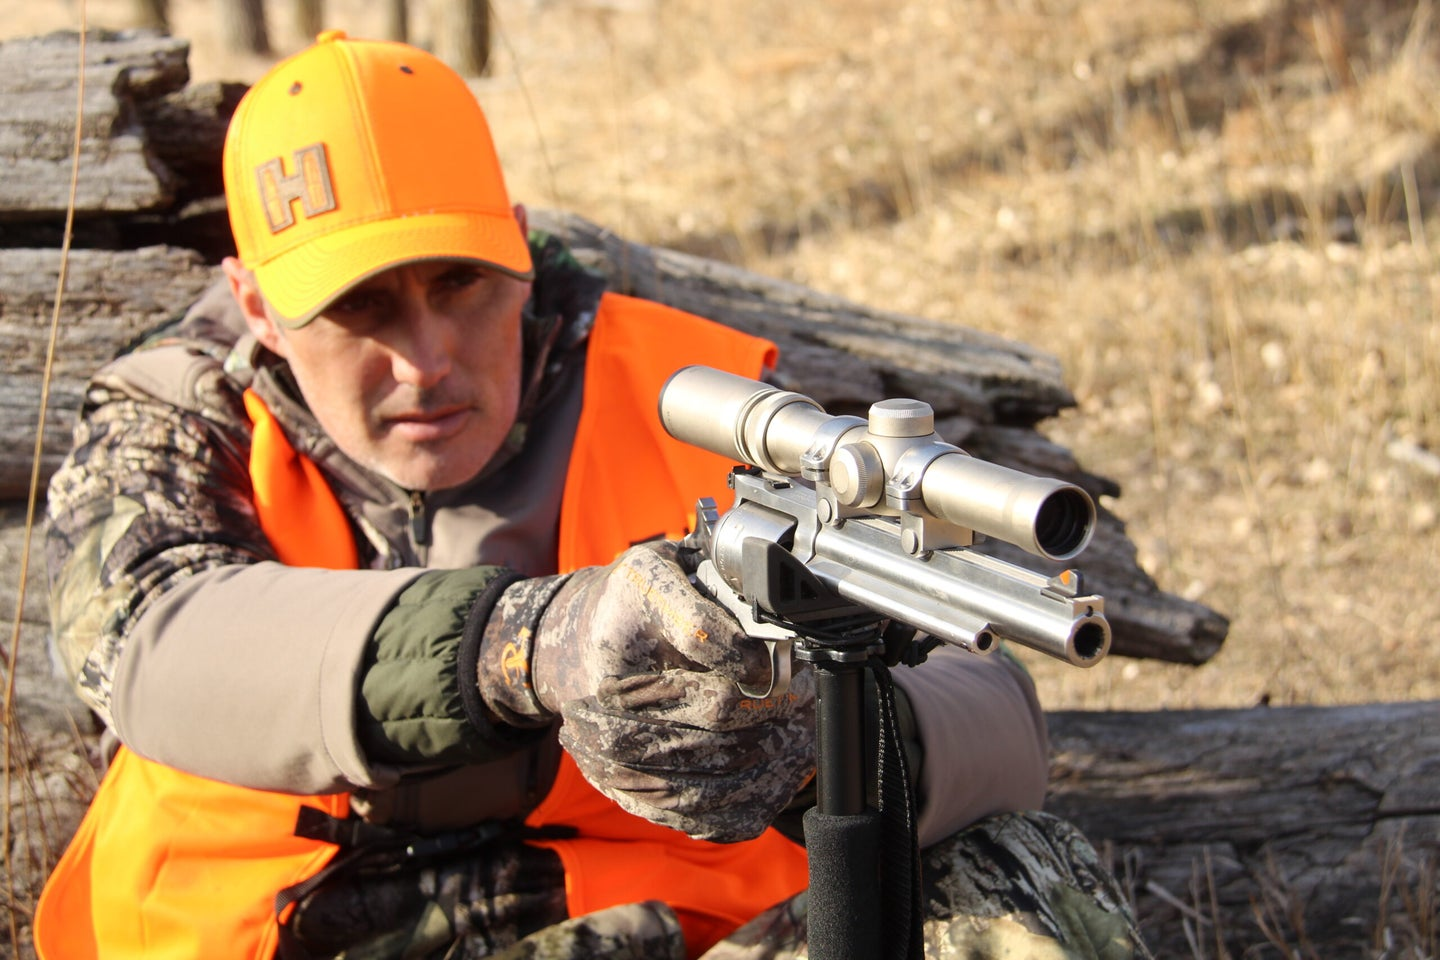 If you want to challenge yourself, try hunting big game with a handgun.